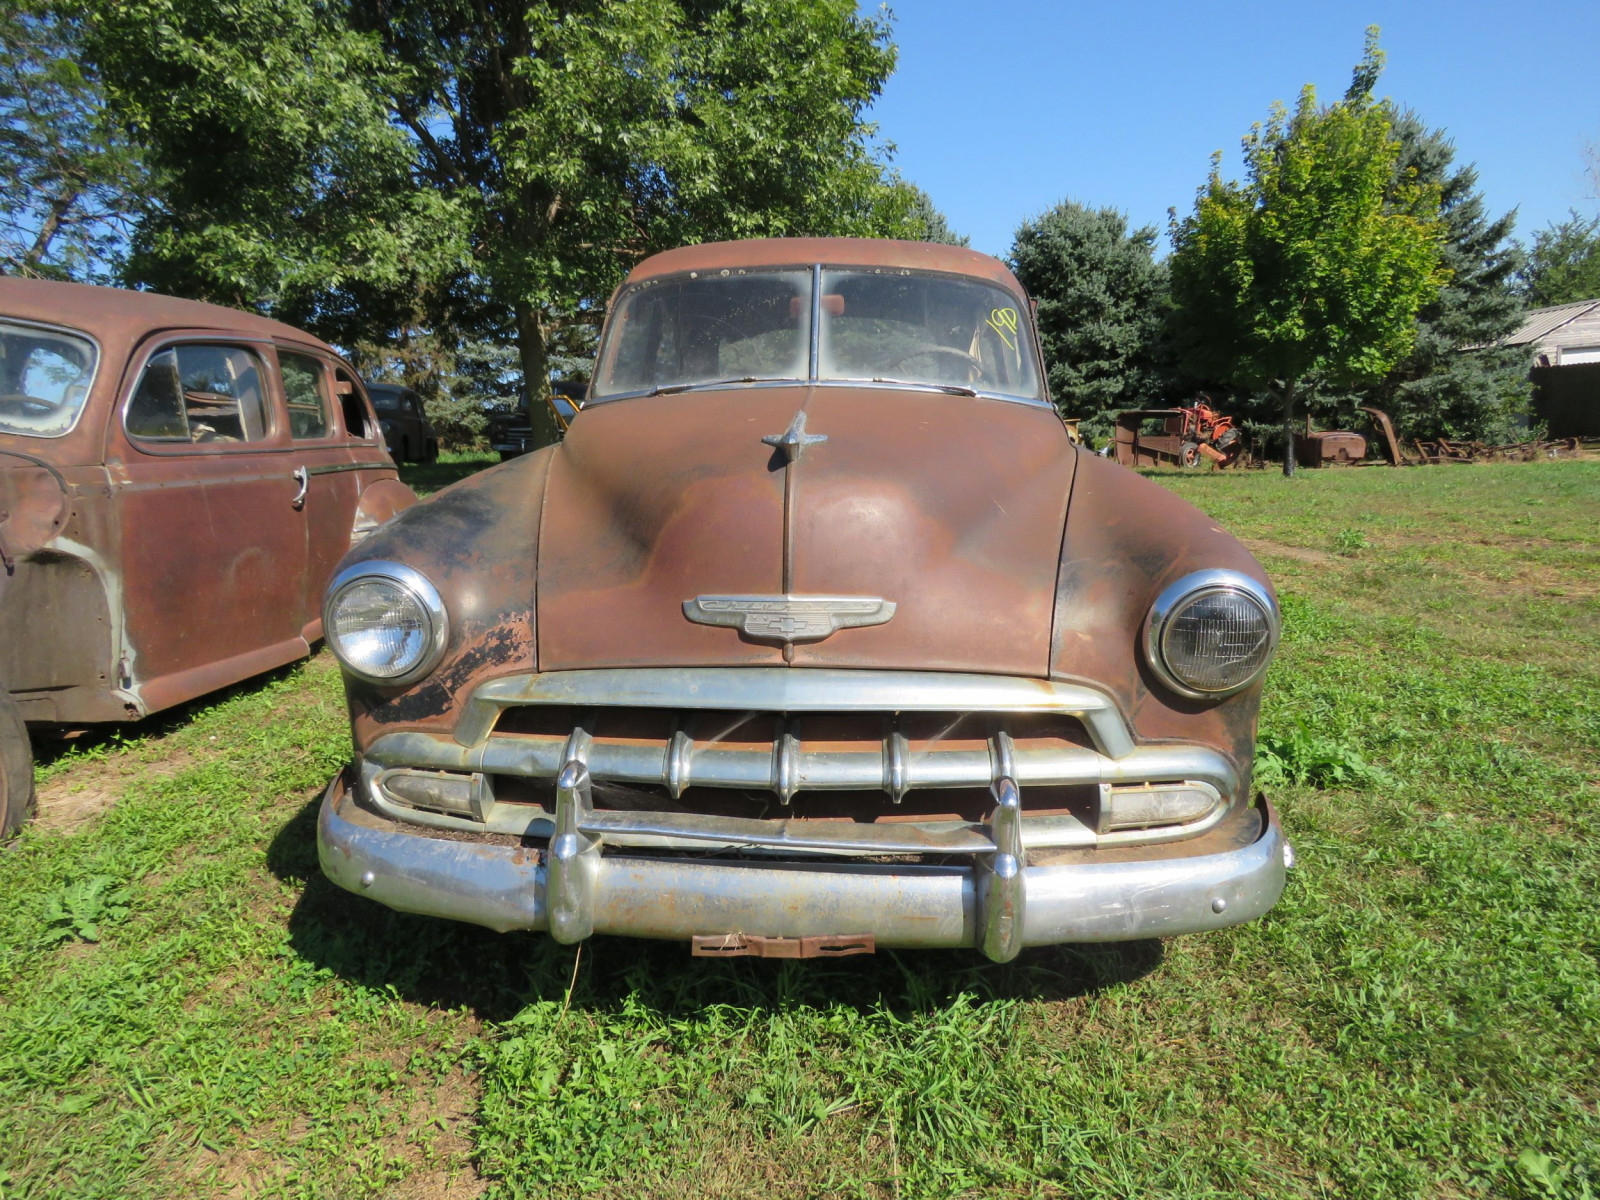 1952 Chevrolet 2dr Sedan for Project or Parts - Image 2